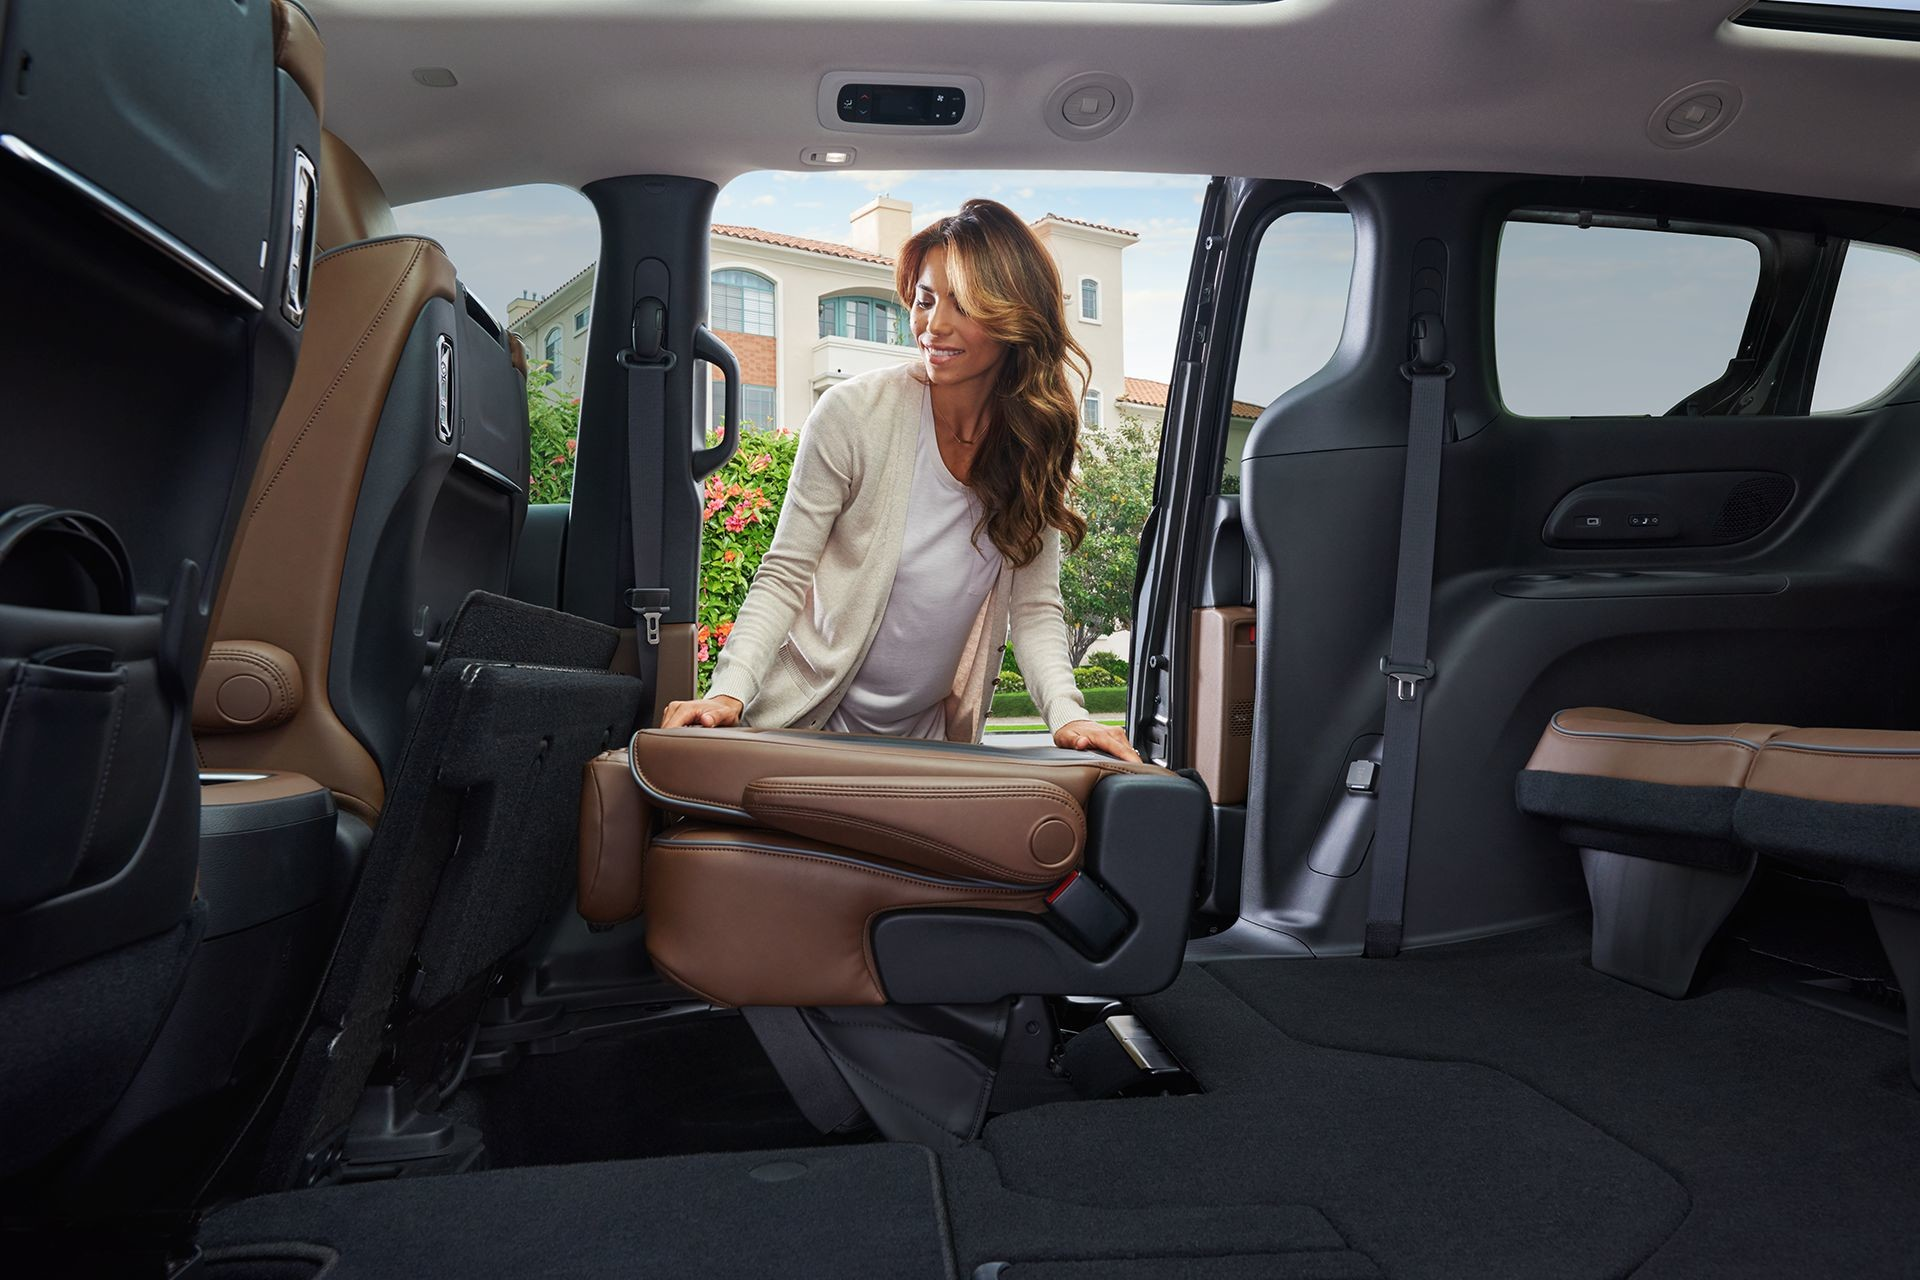 2018 Chrysler Pacifica Interior Seating Folding Seats